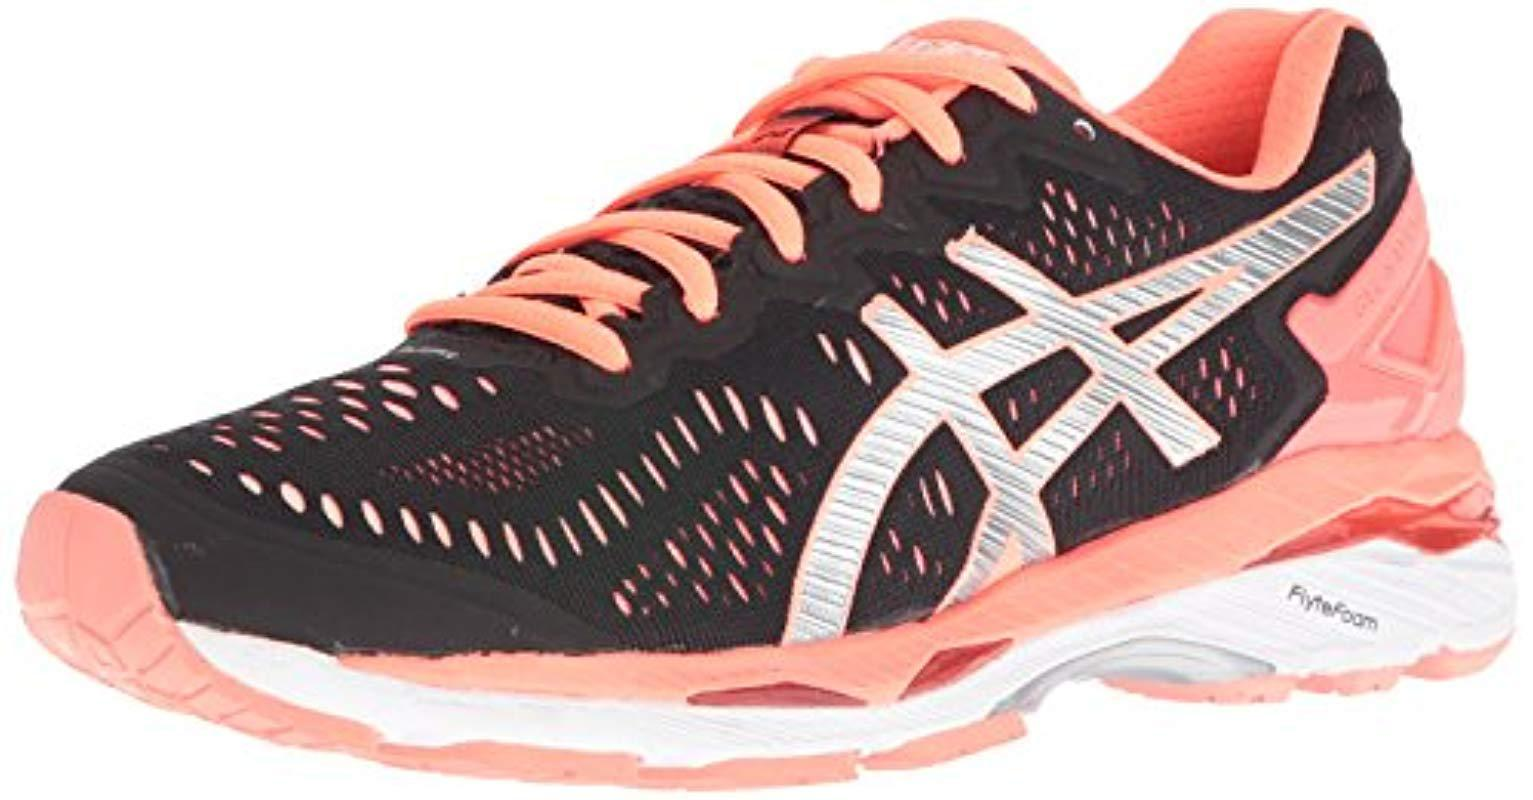 new arrival 0ff66 0aaa5 Lyst - Asics Gel-kayano 23 Running Shoe - Save 23%